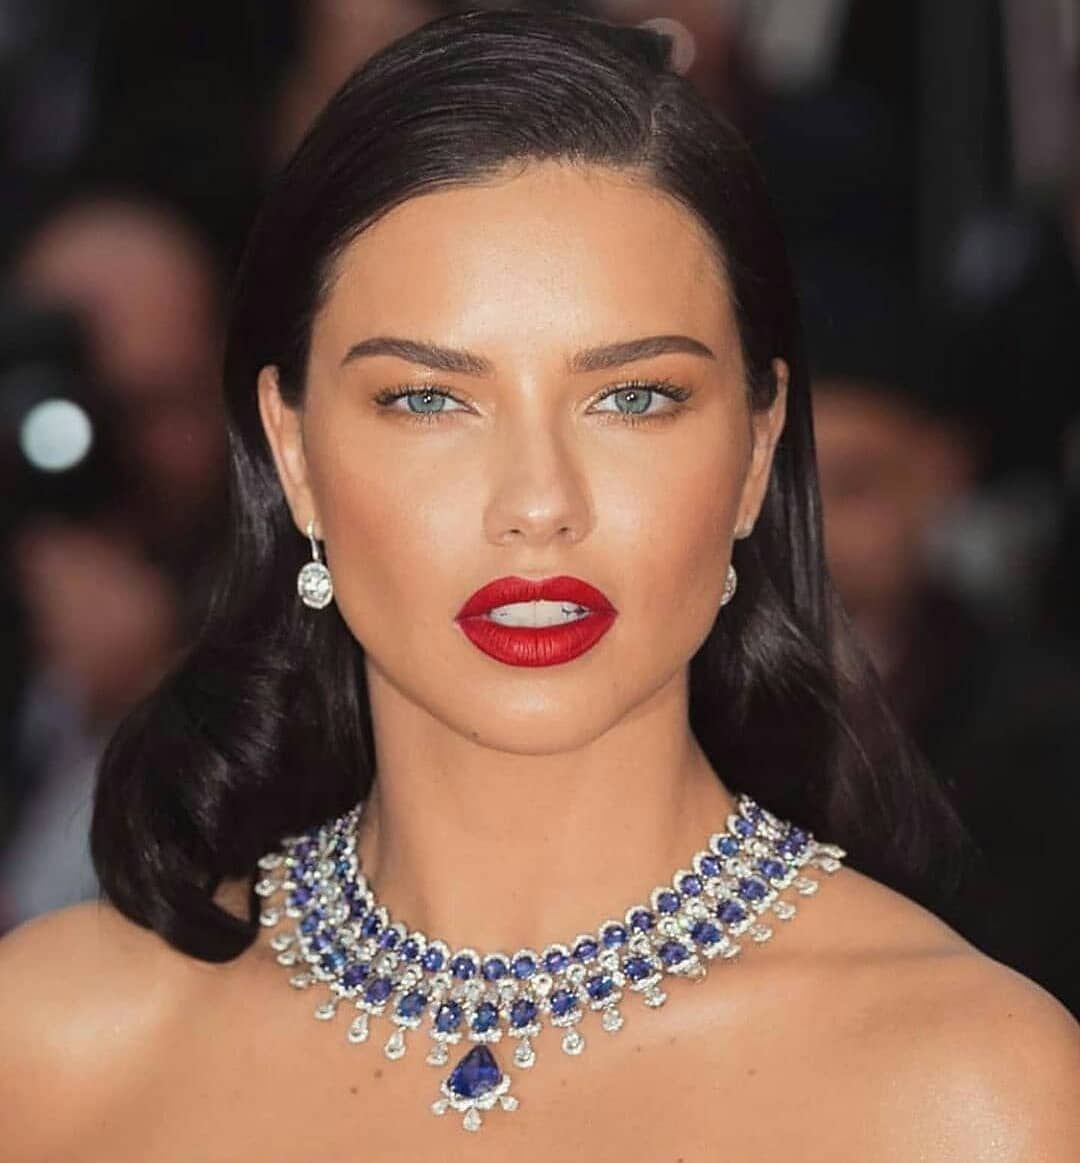 Reposted from @haremsjewel Queen of #jewellery !😍 1-9? .#adrianalima 😍 . . 💖 💕💞 . . . .#earings #celebrities #style #inspiration #diamonds #rosegold #necklace #brooch #jewellcloset #finejewelry #jewelry #jewellery #jewels #jewelrydesigner #glam #finejewellery #luxurylifestyle  #chic #trendy #fashionable #highjewelry #highjewellery  #handmadejewellery #luxe  #jewelleryaddiction - #regrann